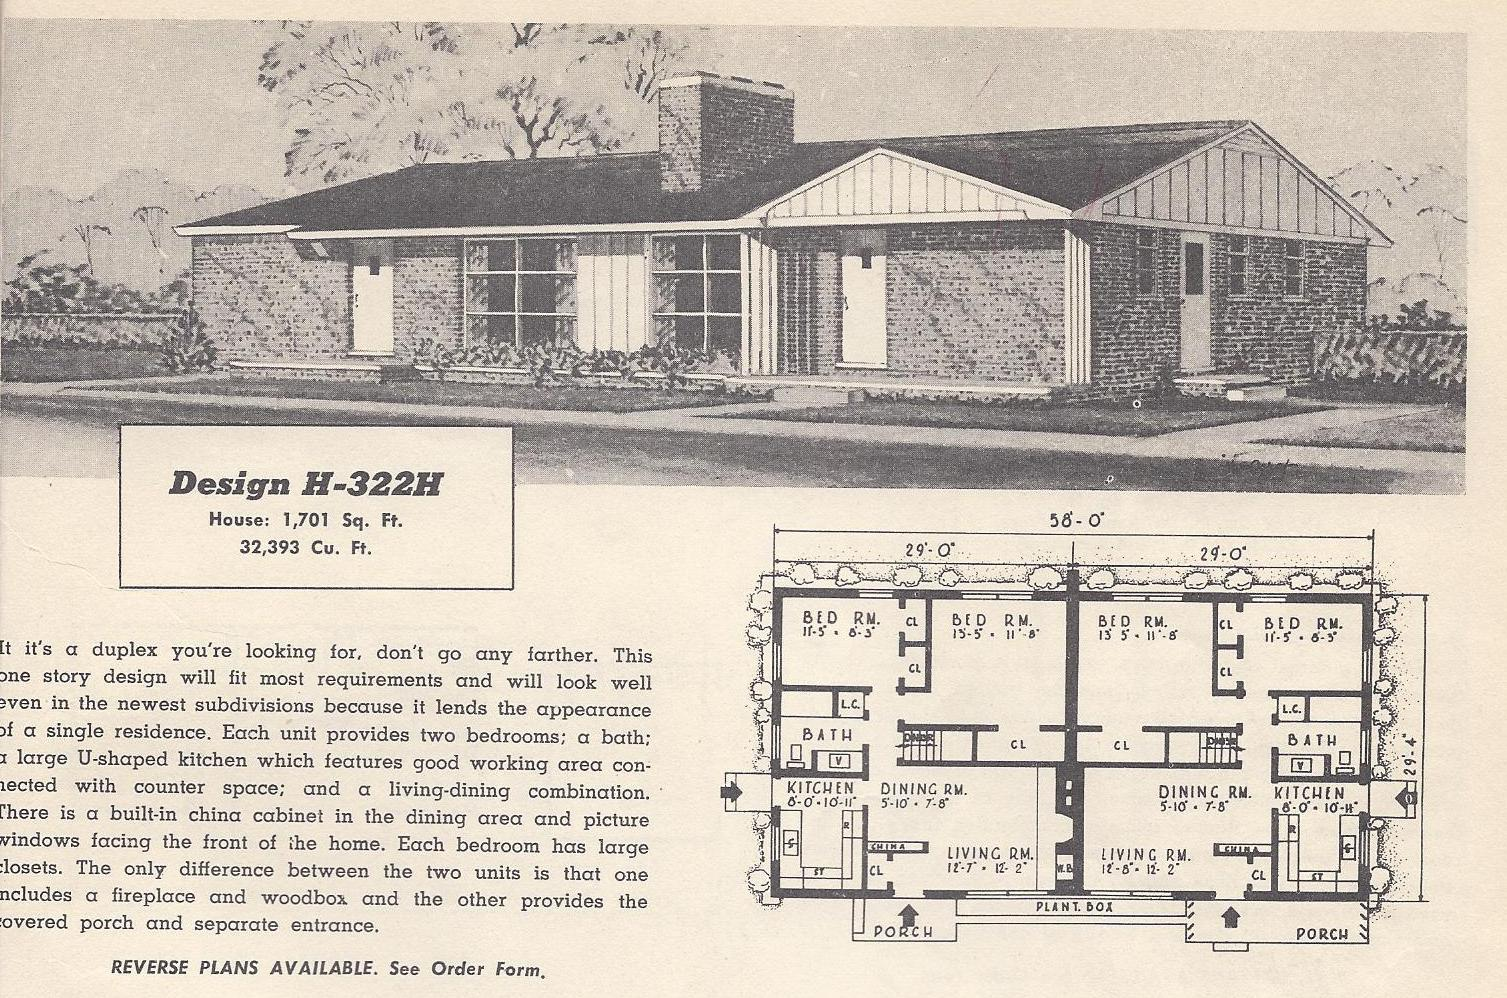 Vintage house plans 322h antique alter ego for Vintage ranch house plans